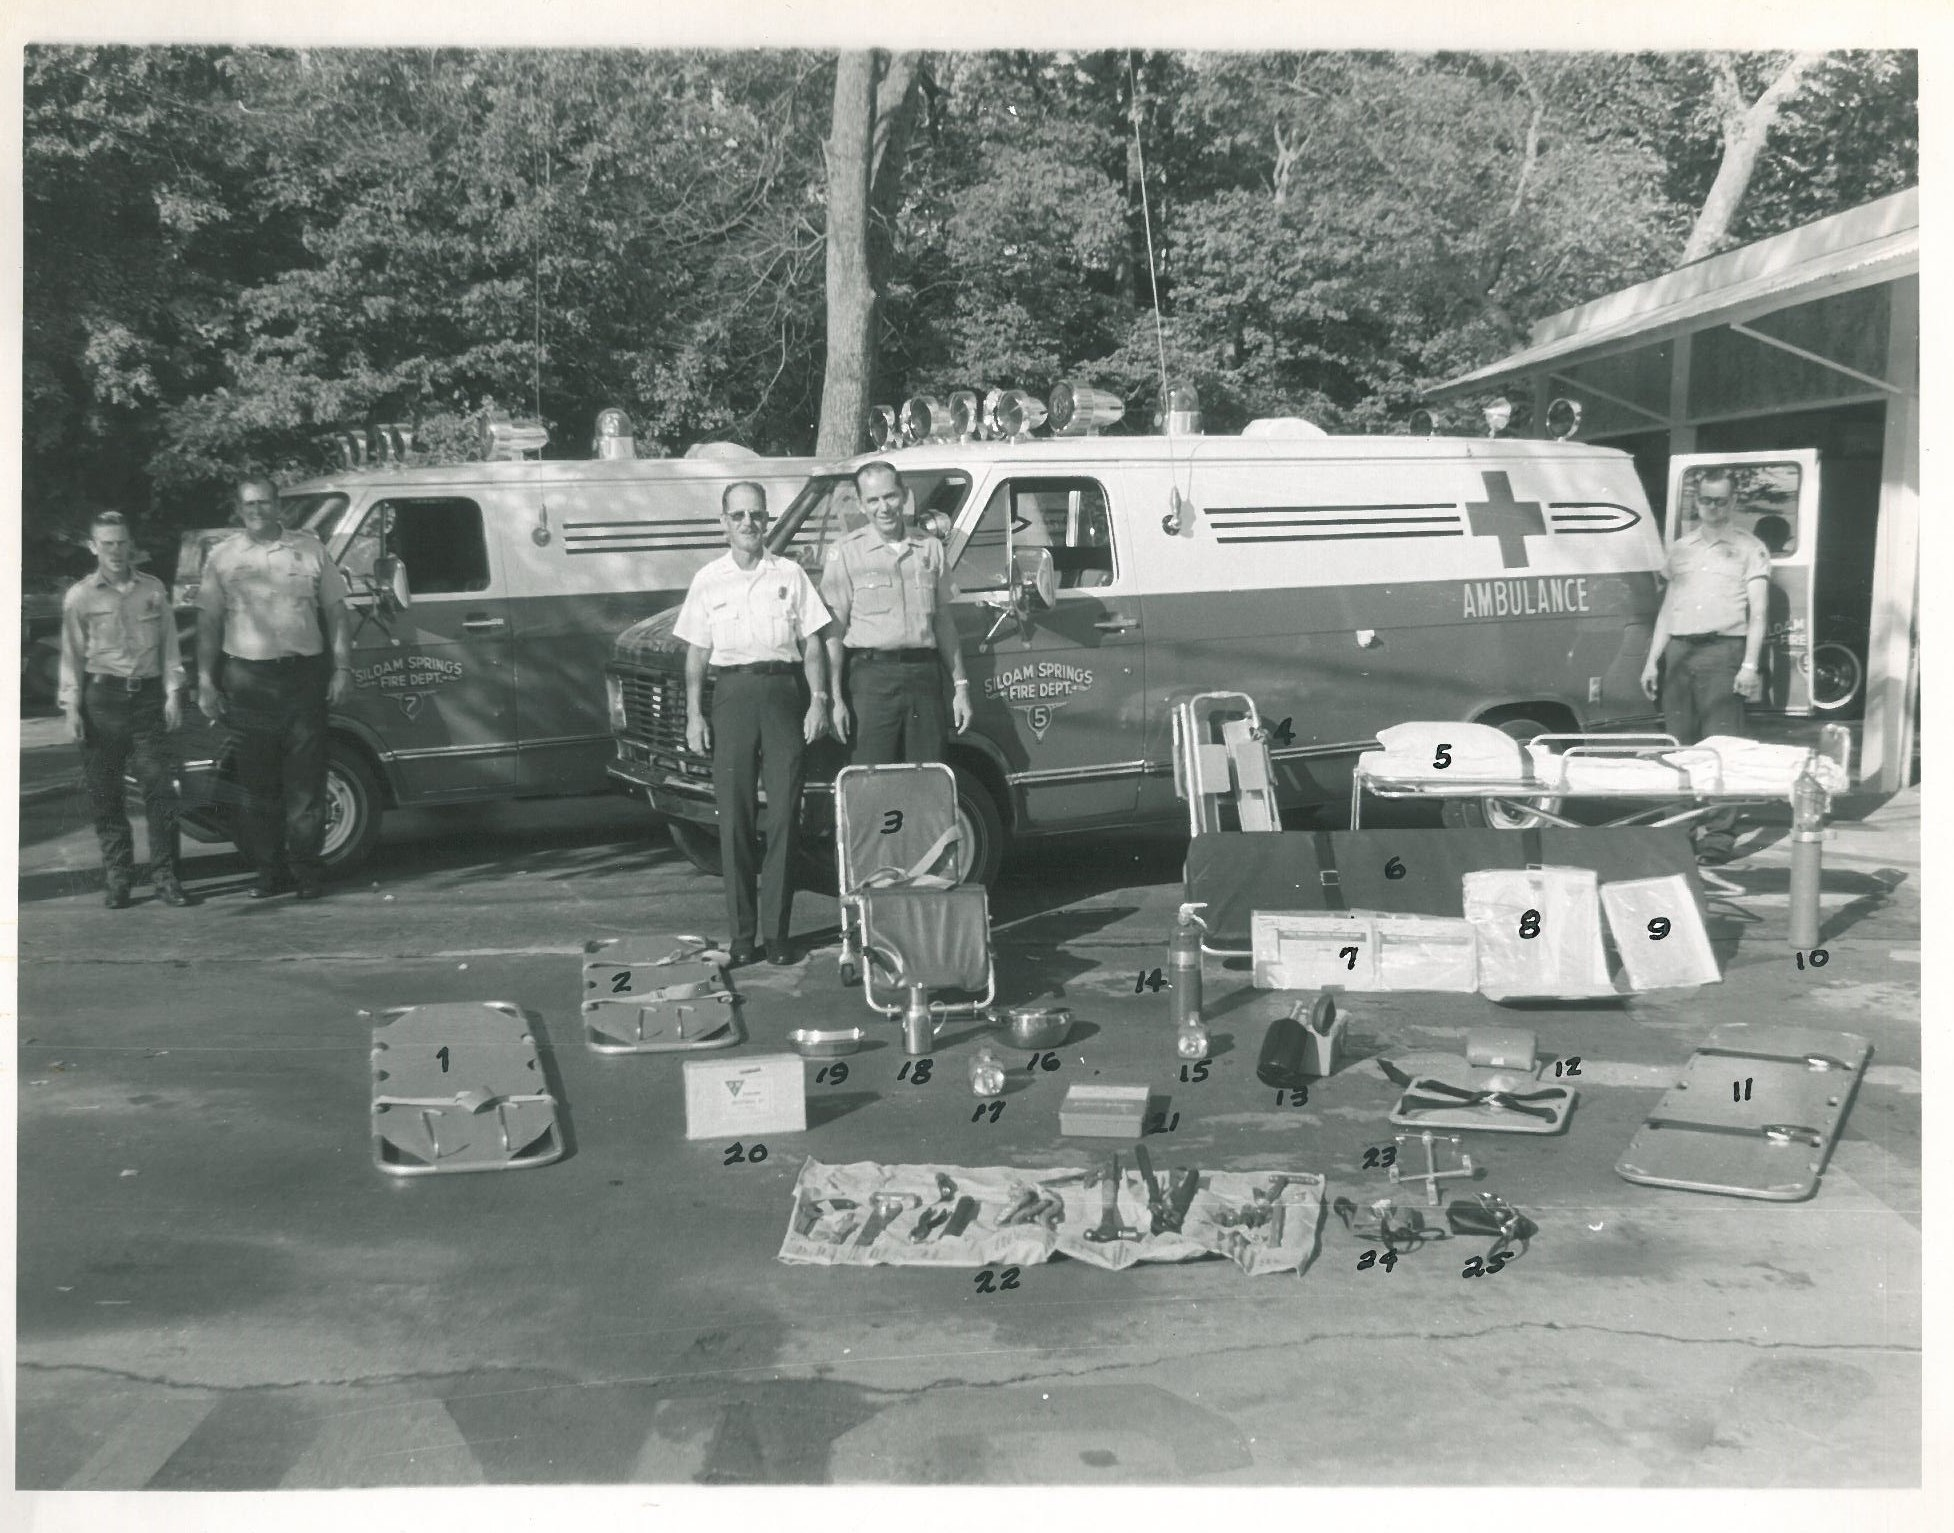 Siloam Springs Fire Department Ambulance equipment and Firefighters from early 1970s